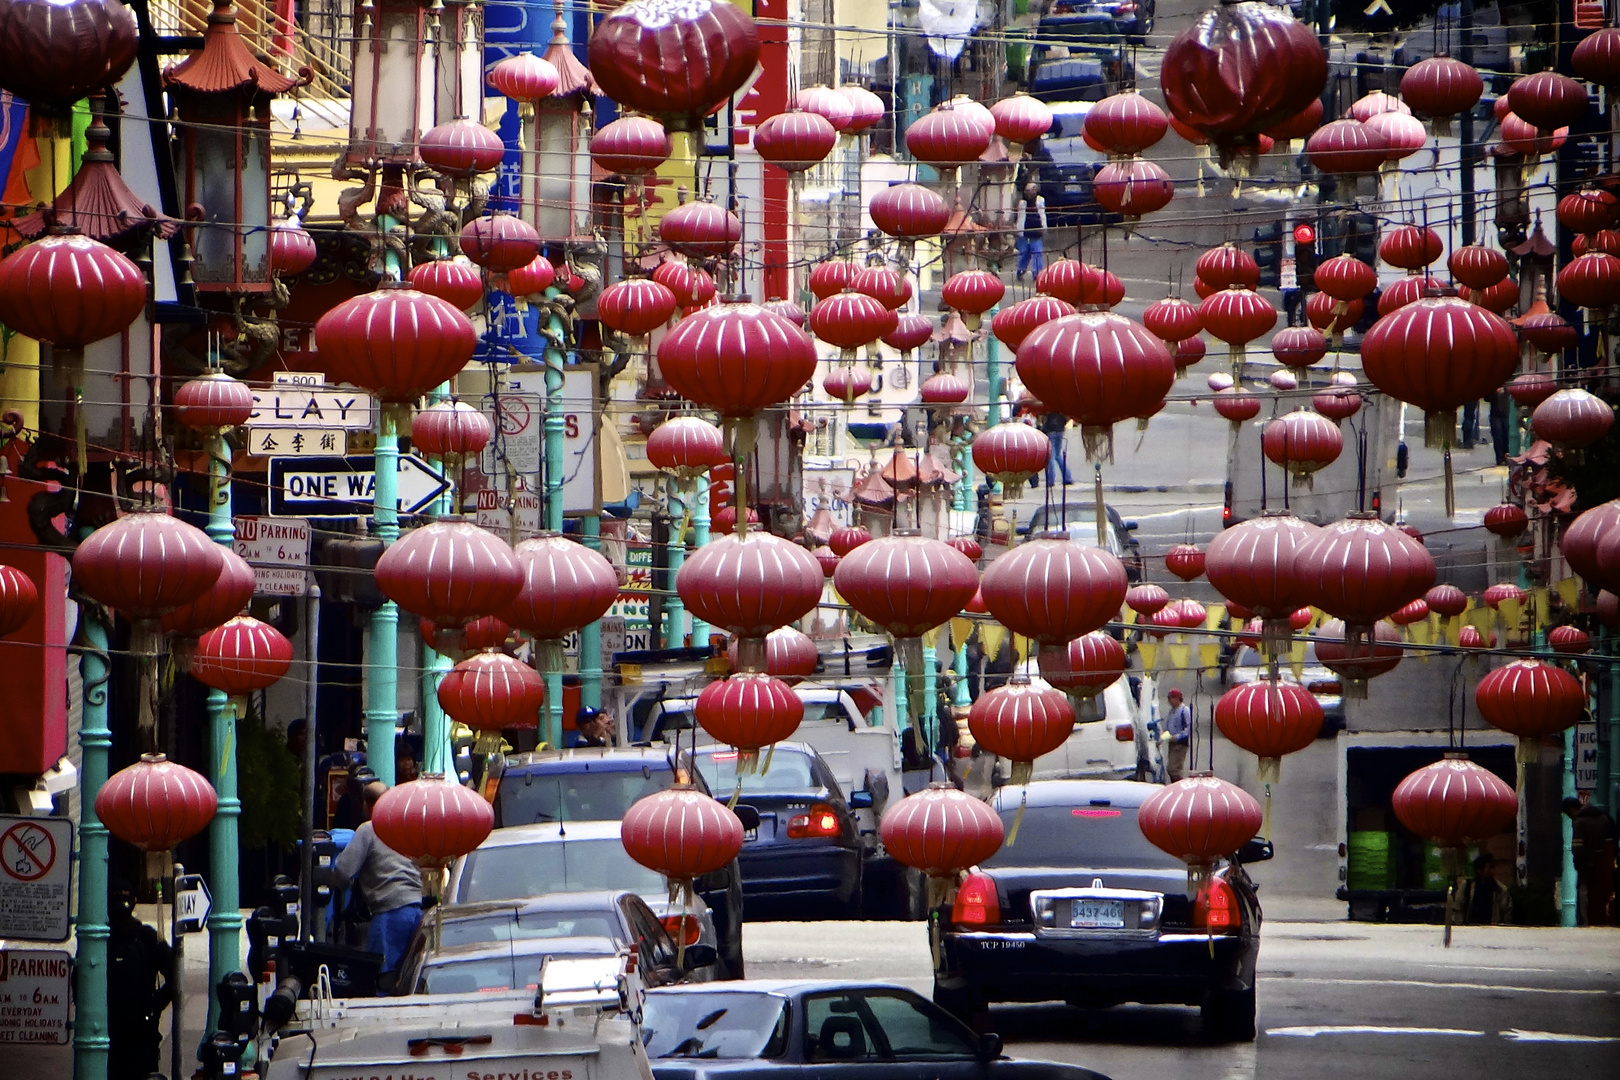 Die Lampions in Chinatown